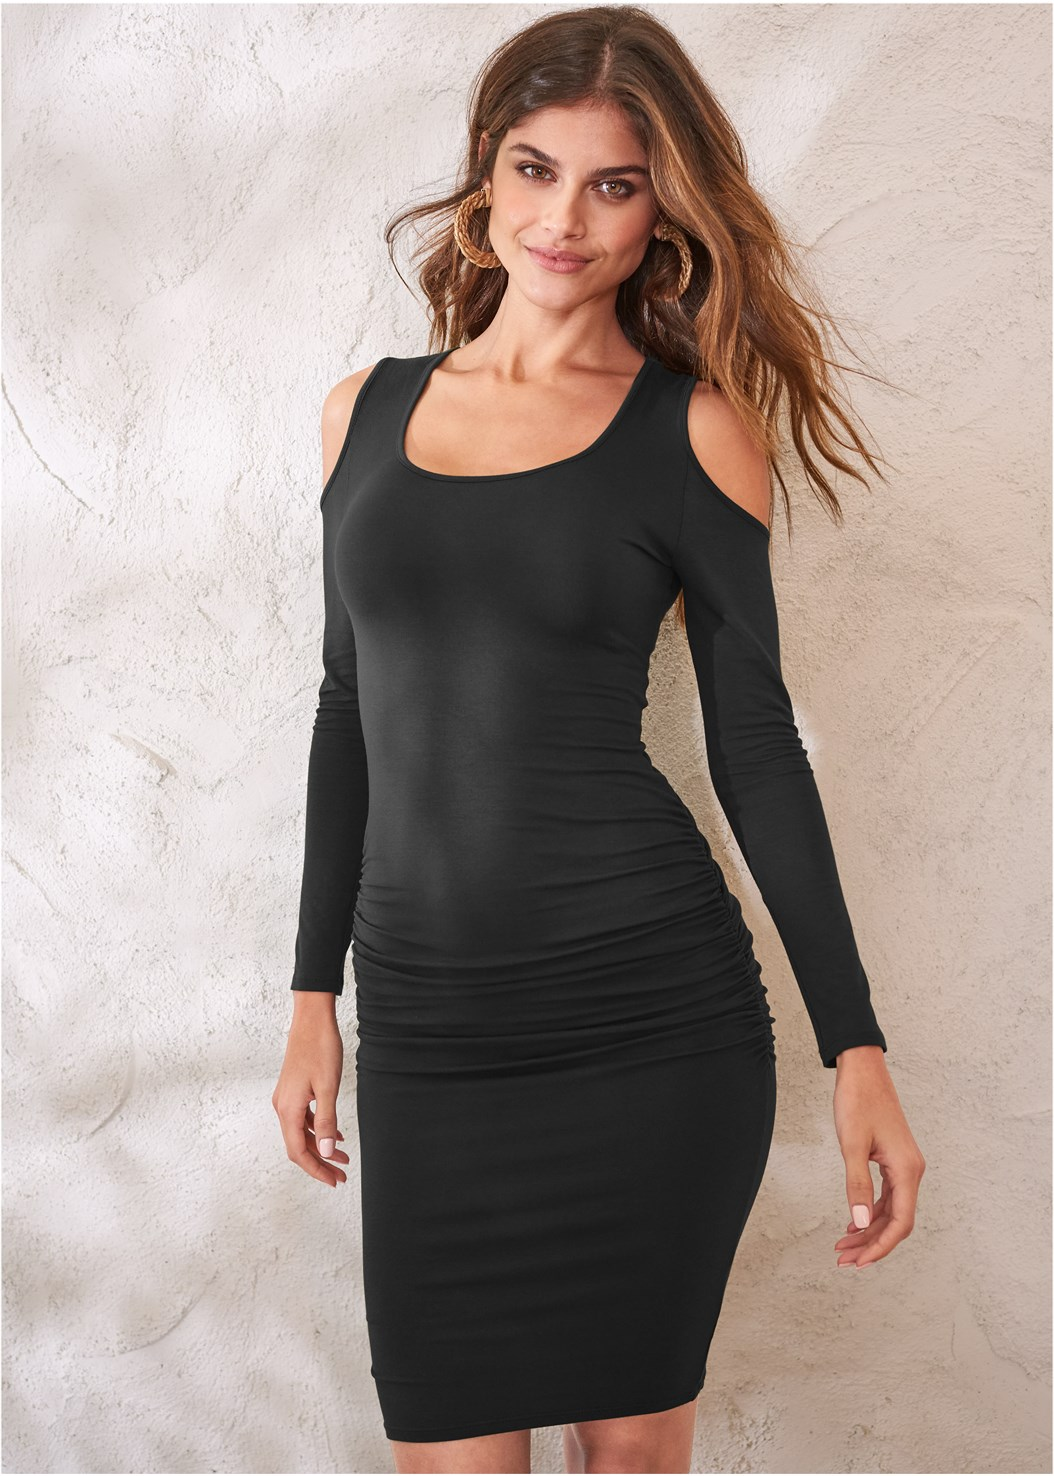 Cold Shoulder Casual Dress,Push Up Bra Buy 2 For $40